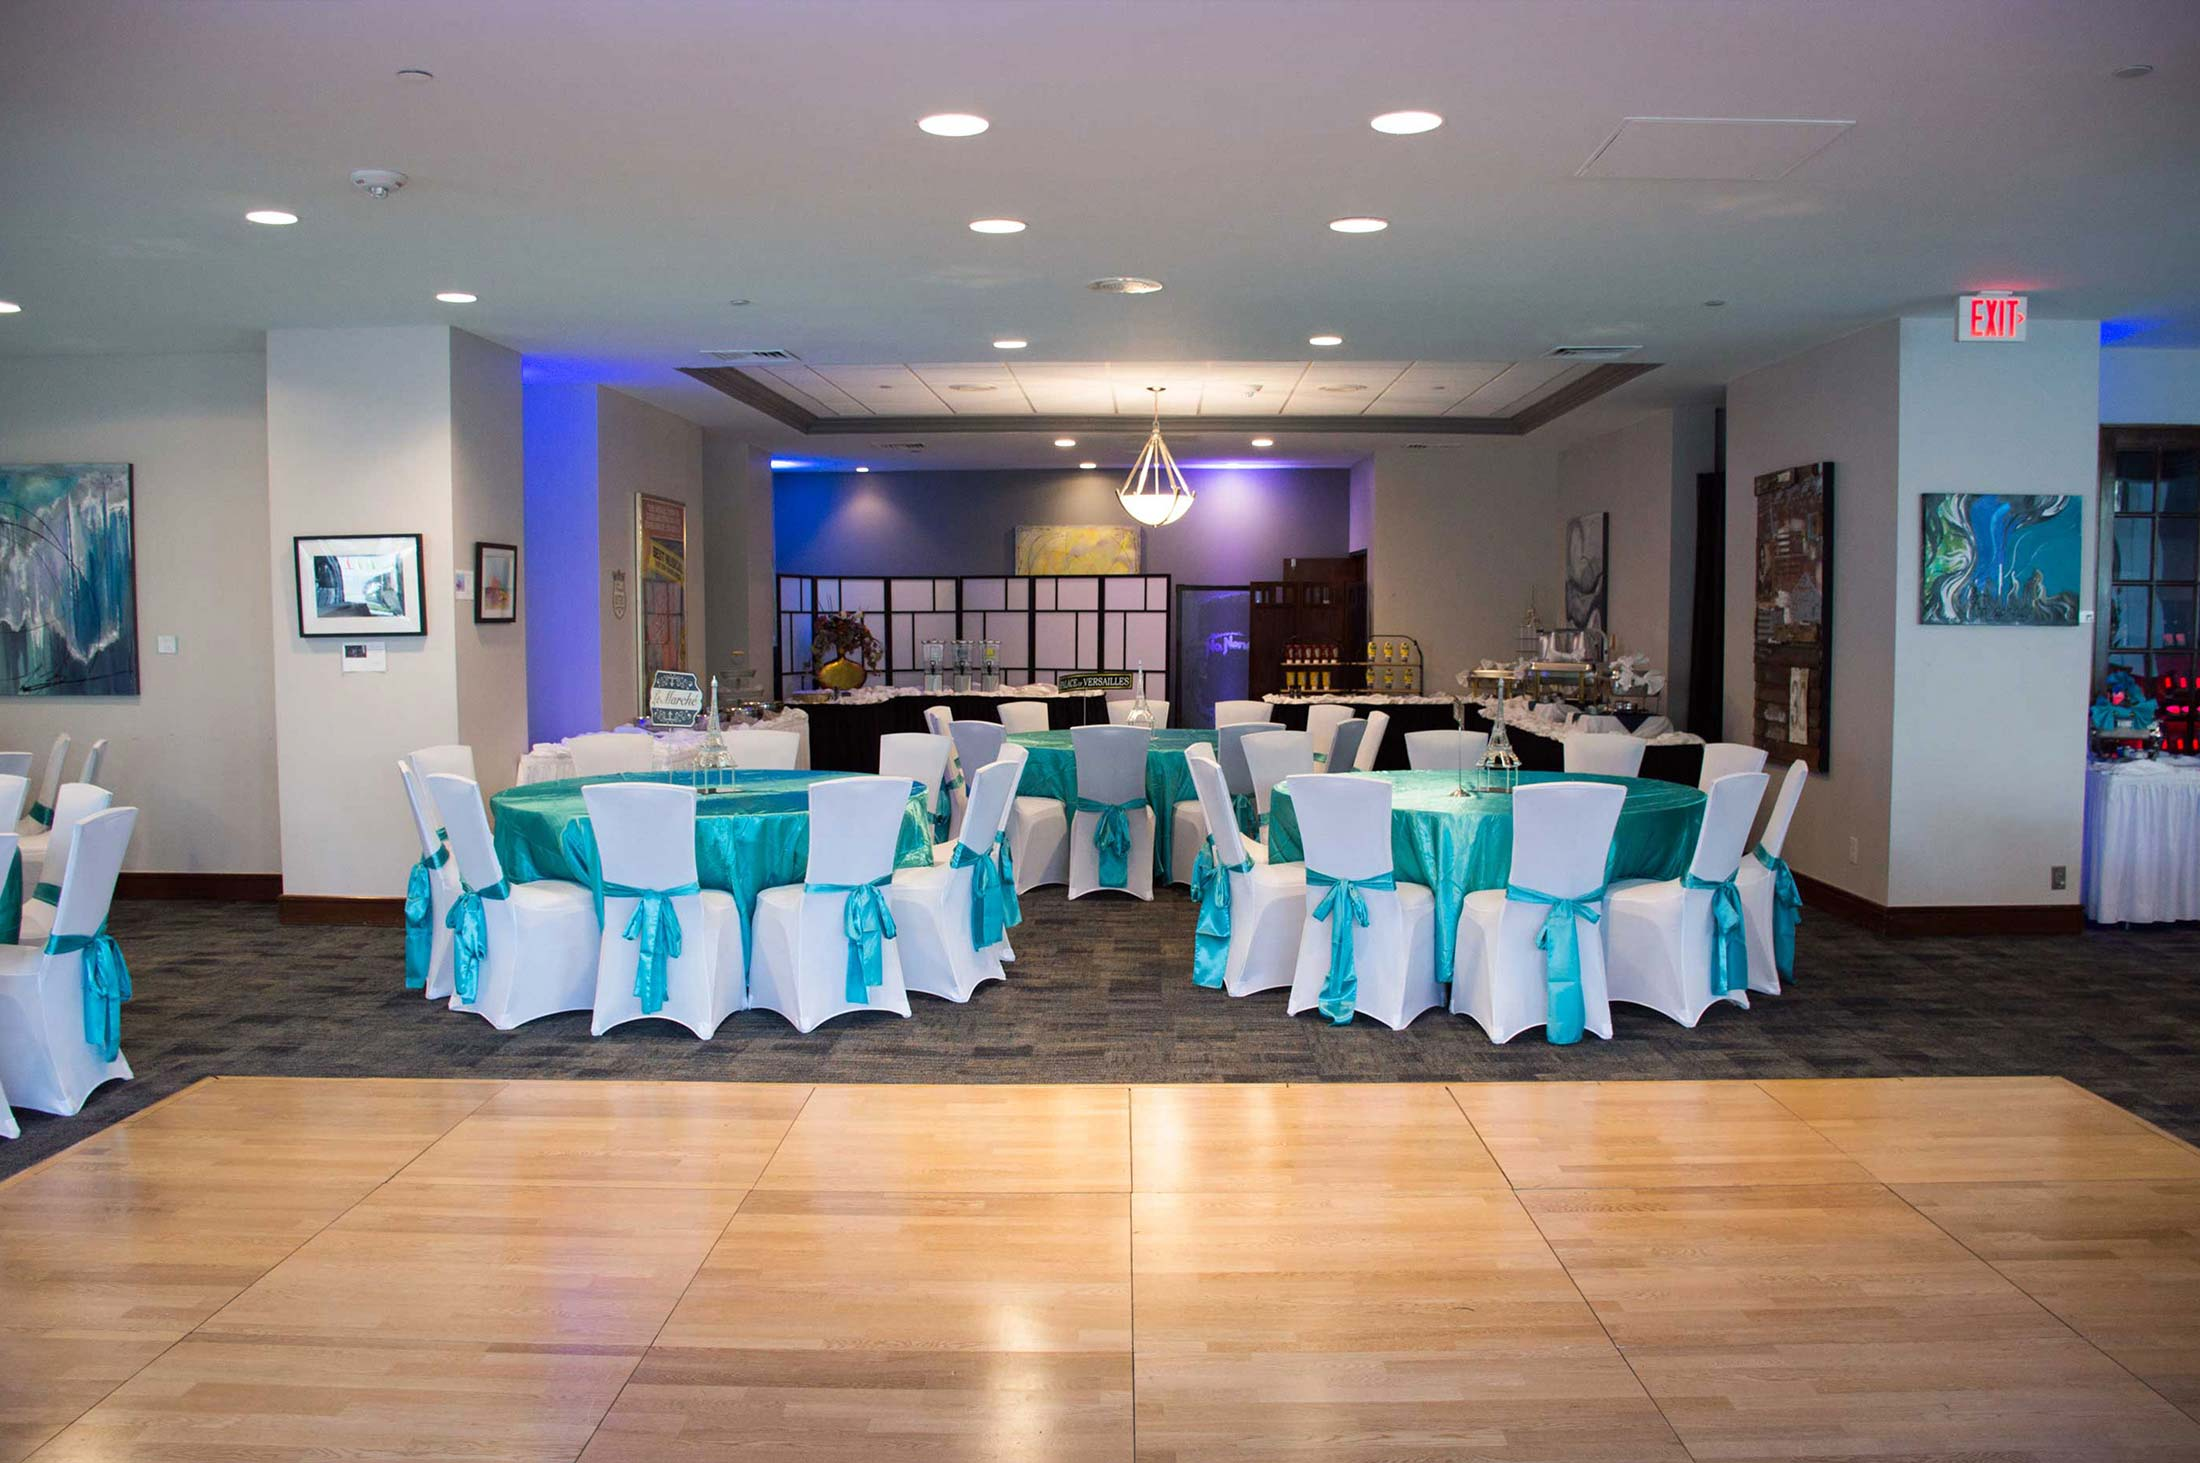 banquet set up with rounds with teal bows on chairs